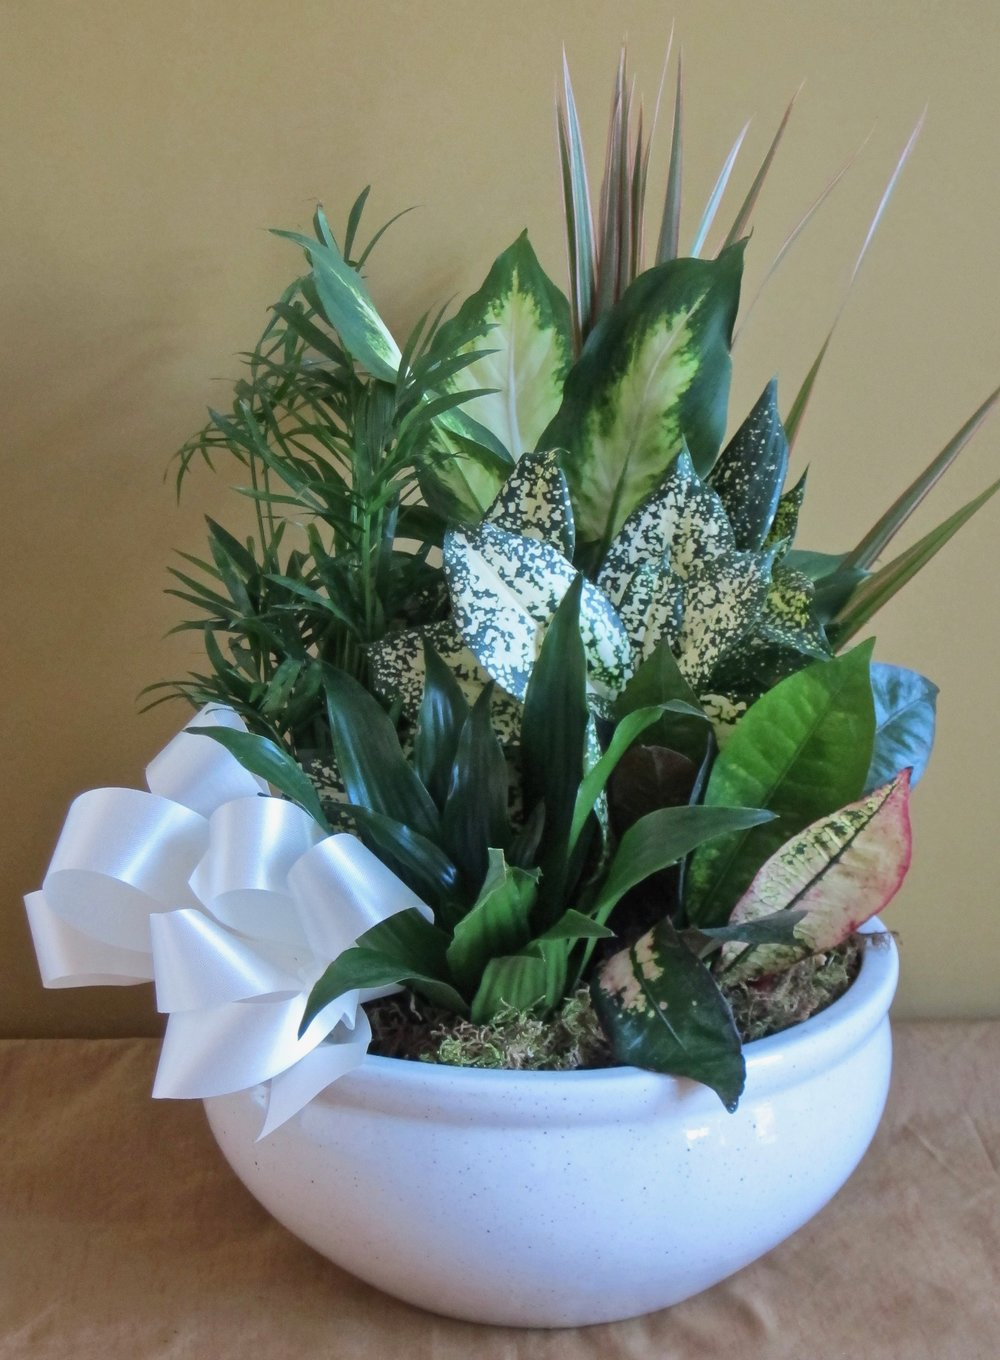 DISH GARDEN in white porcelain vase,18 inches high by 12 inches wide, $48.